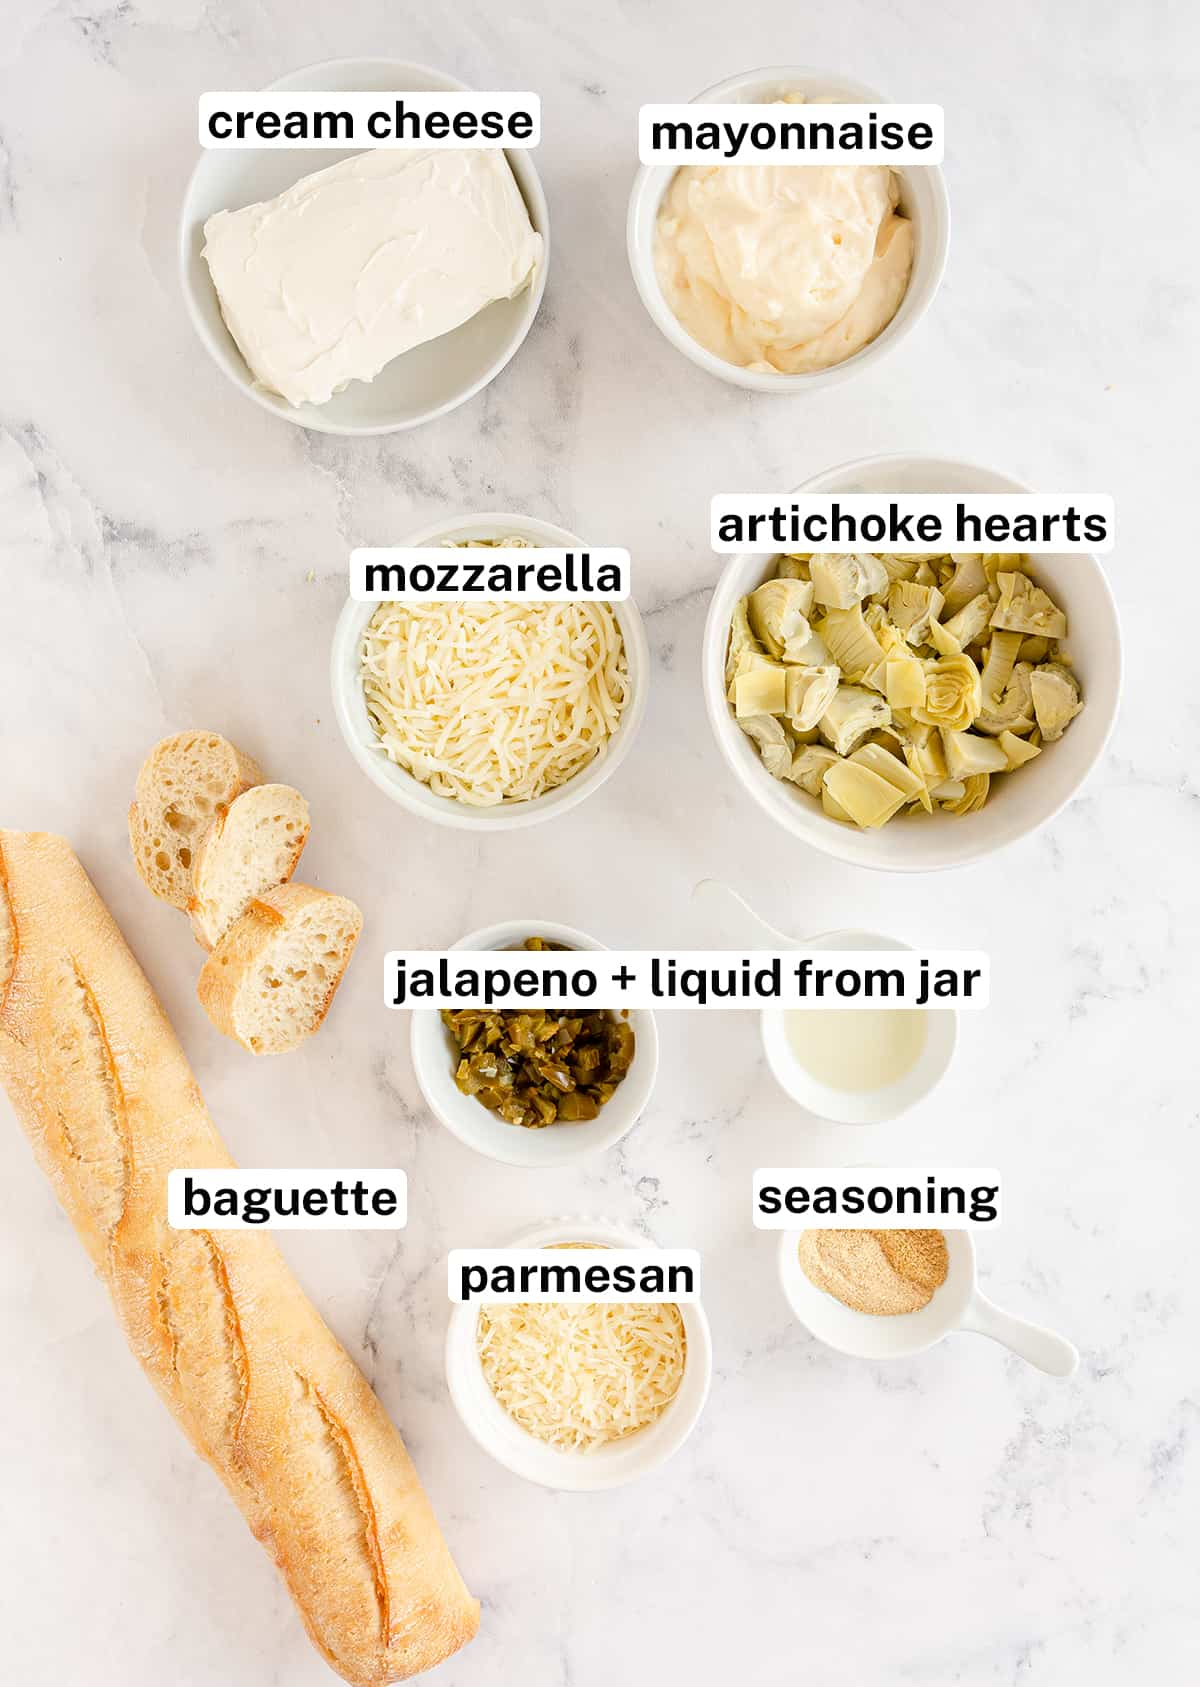 The ingredients to make Artichoke Dip with text overlay.